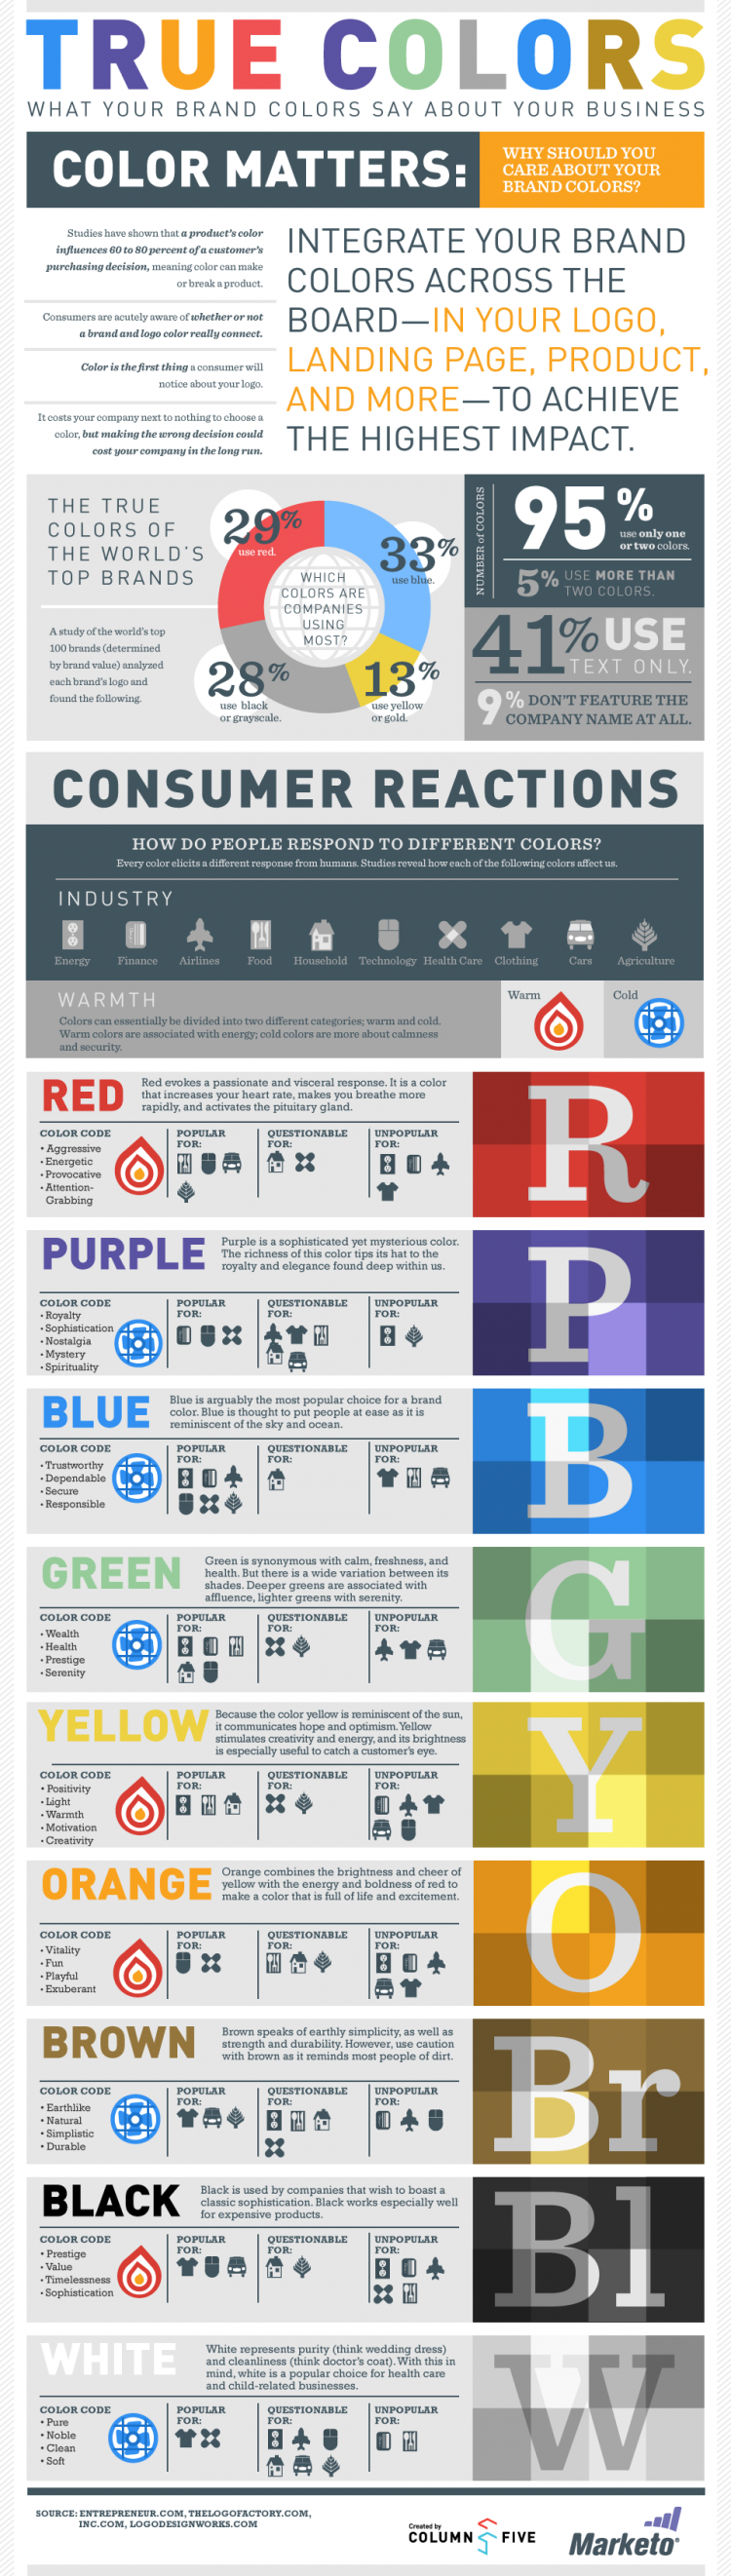 Marketo true colors 750x2643 What Your Brand Colors Say About Your Business